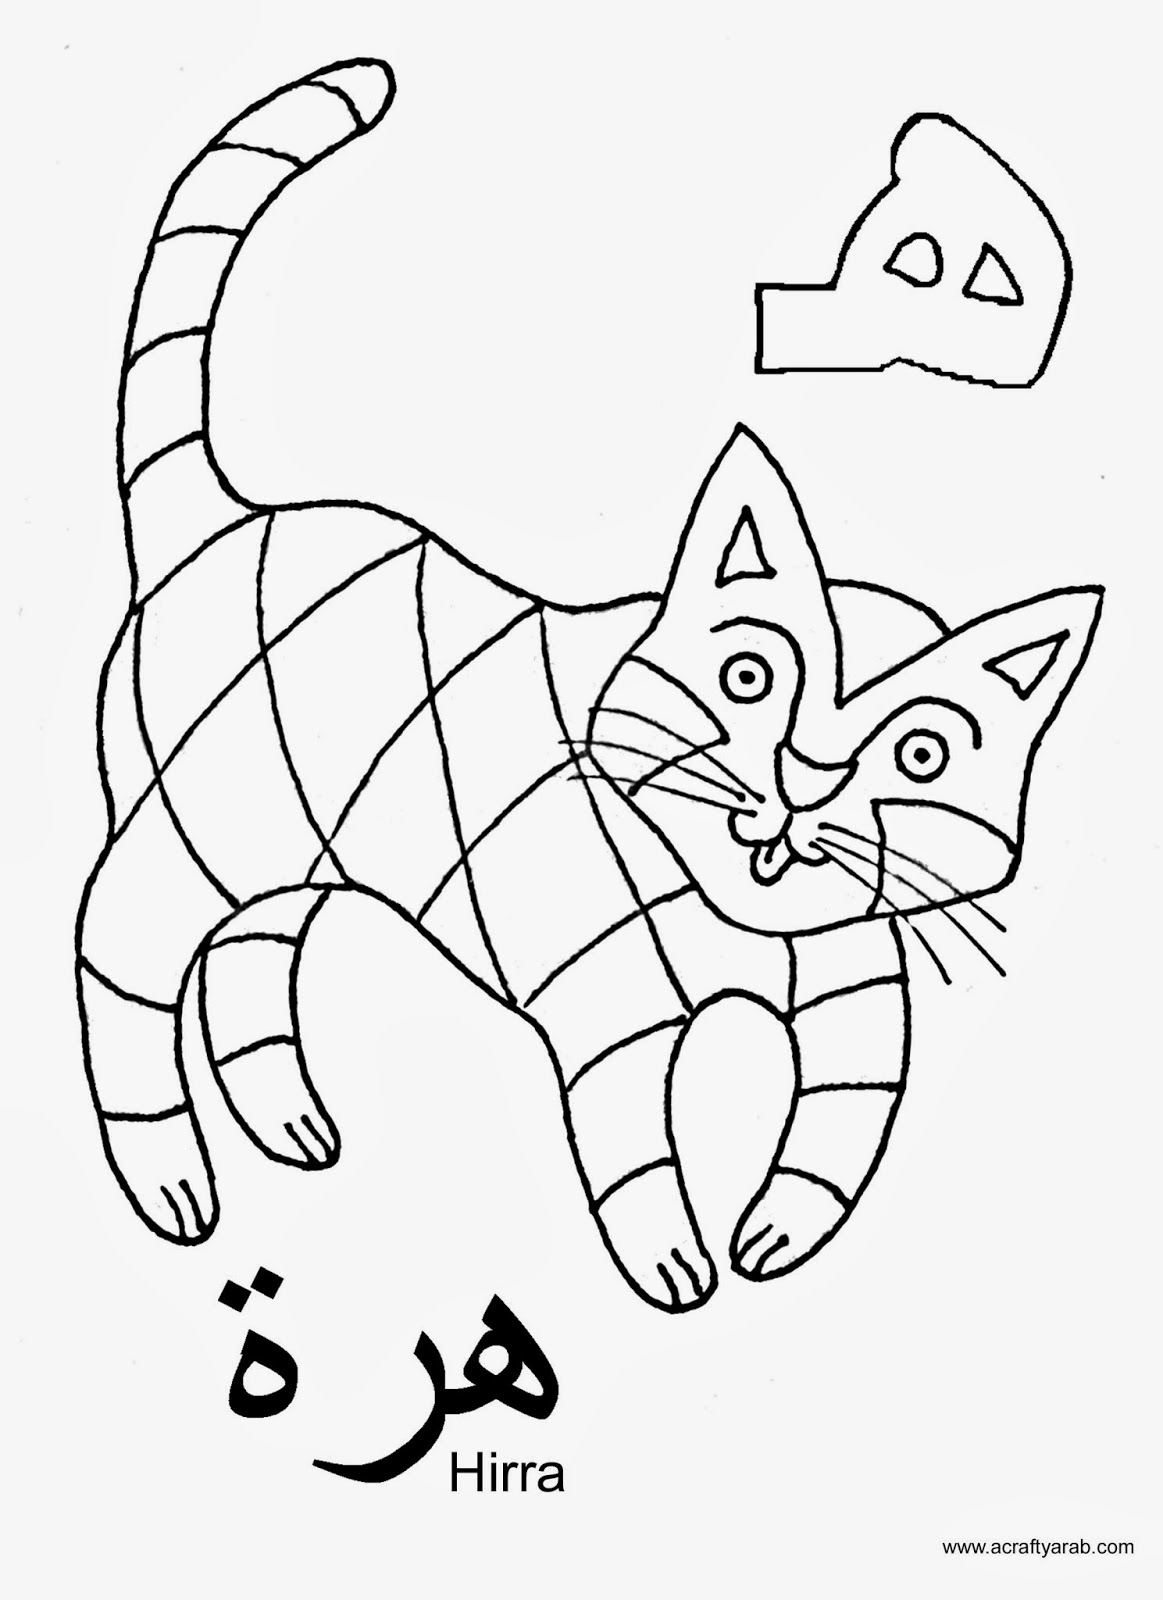 A crafty arab arabic alphabet coloring pages haa is for for Arabic coloring pages